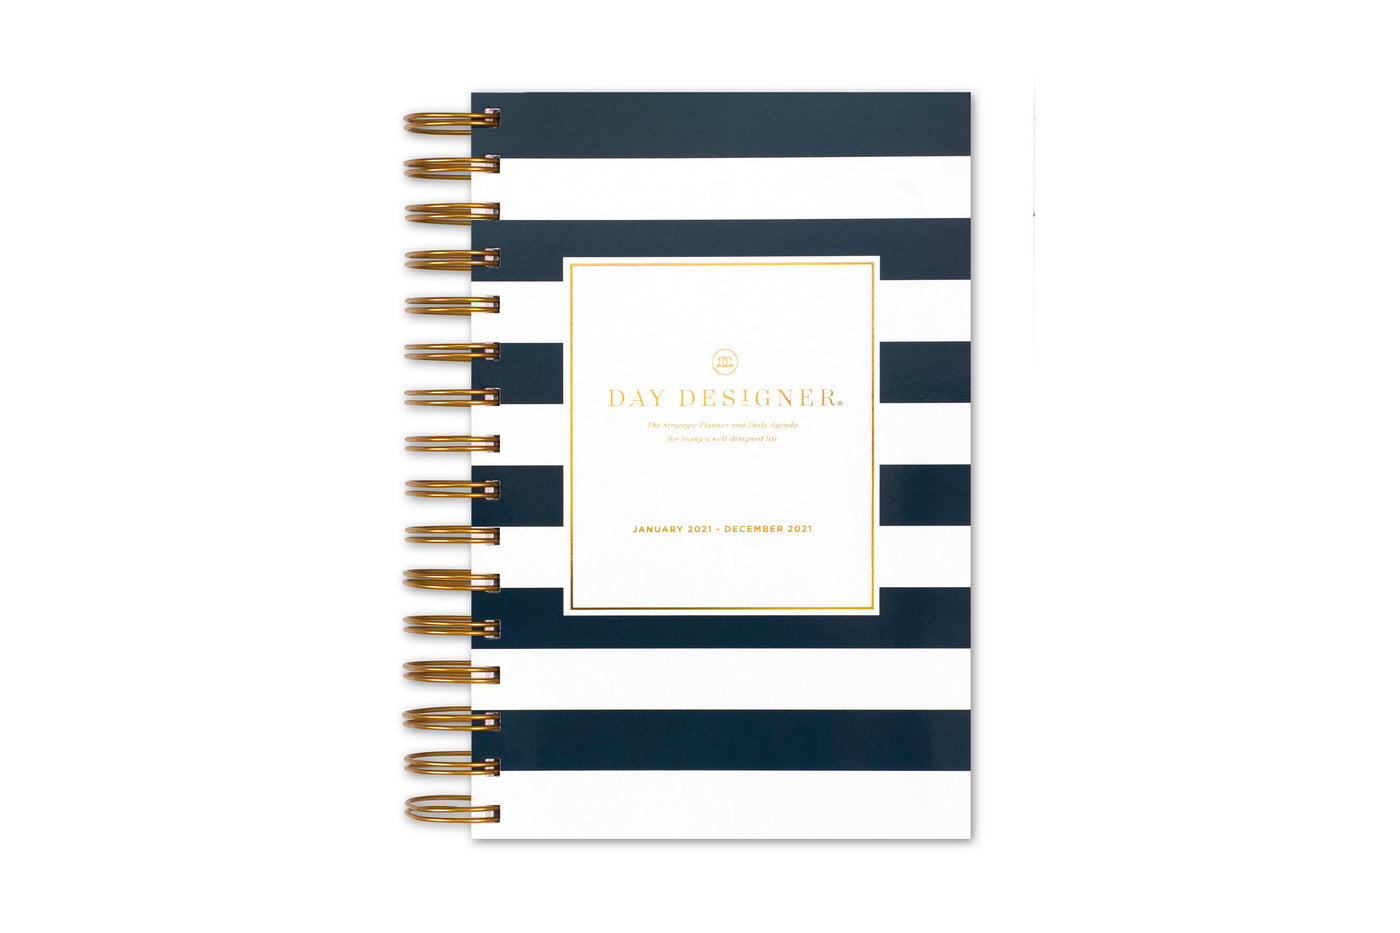 Day designer 5x8 daily monthly planner for blue sky in black and white stripes